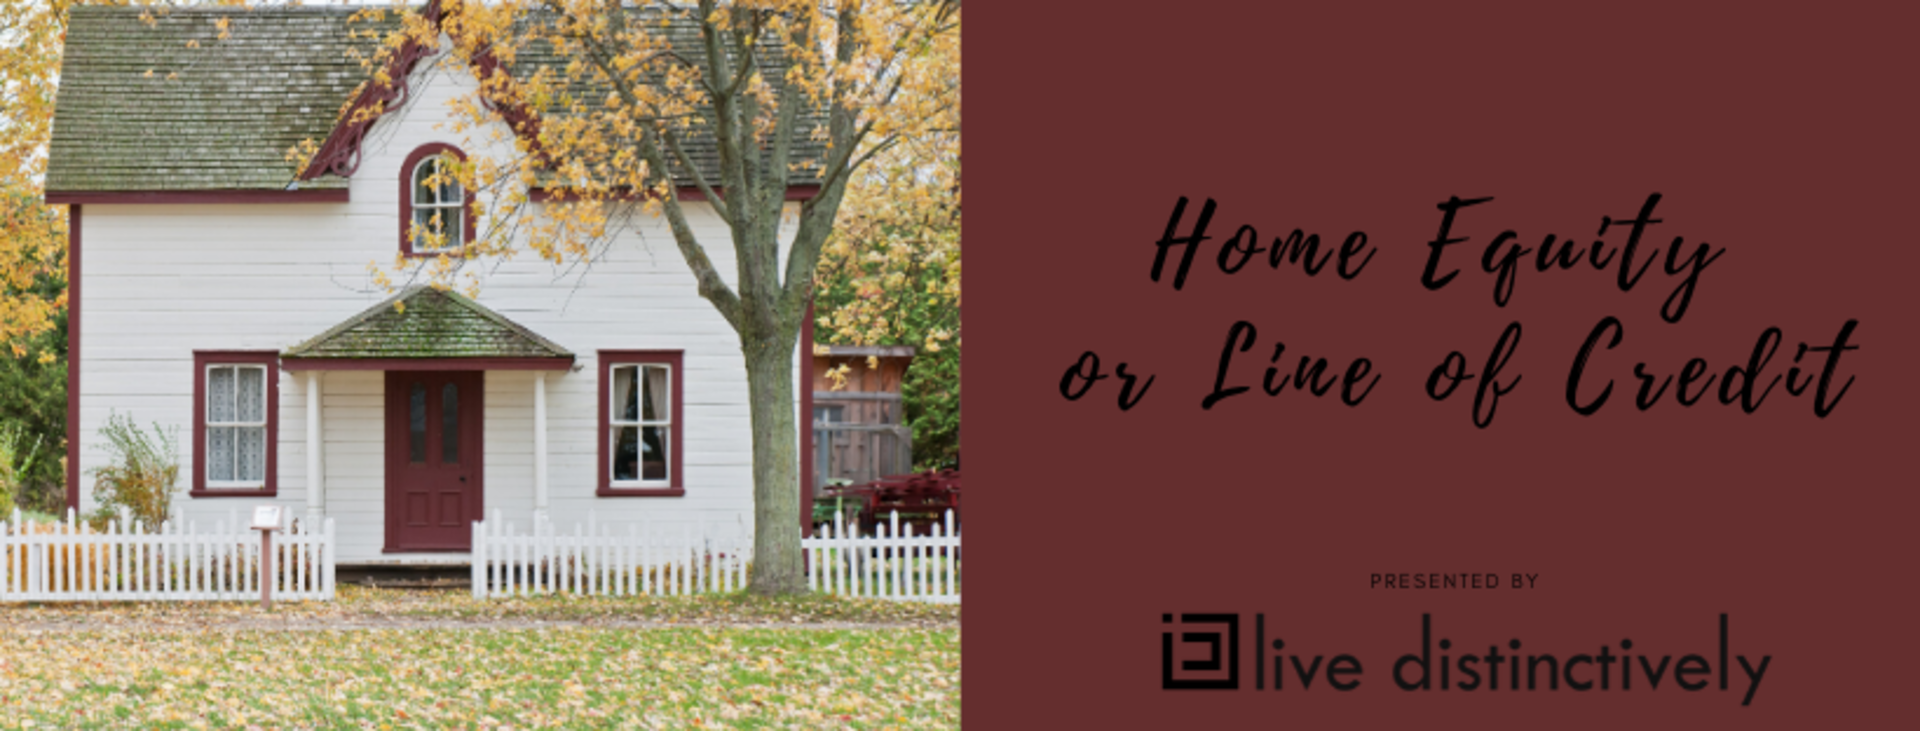 Home Equity Loan or Line of Credit: Which is Better for You?